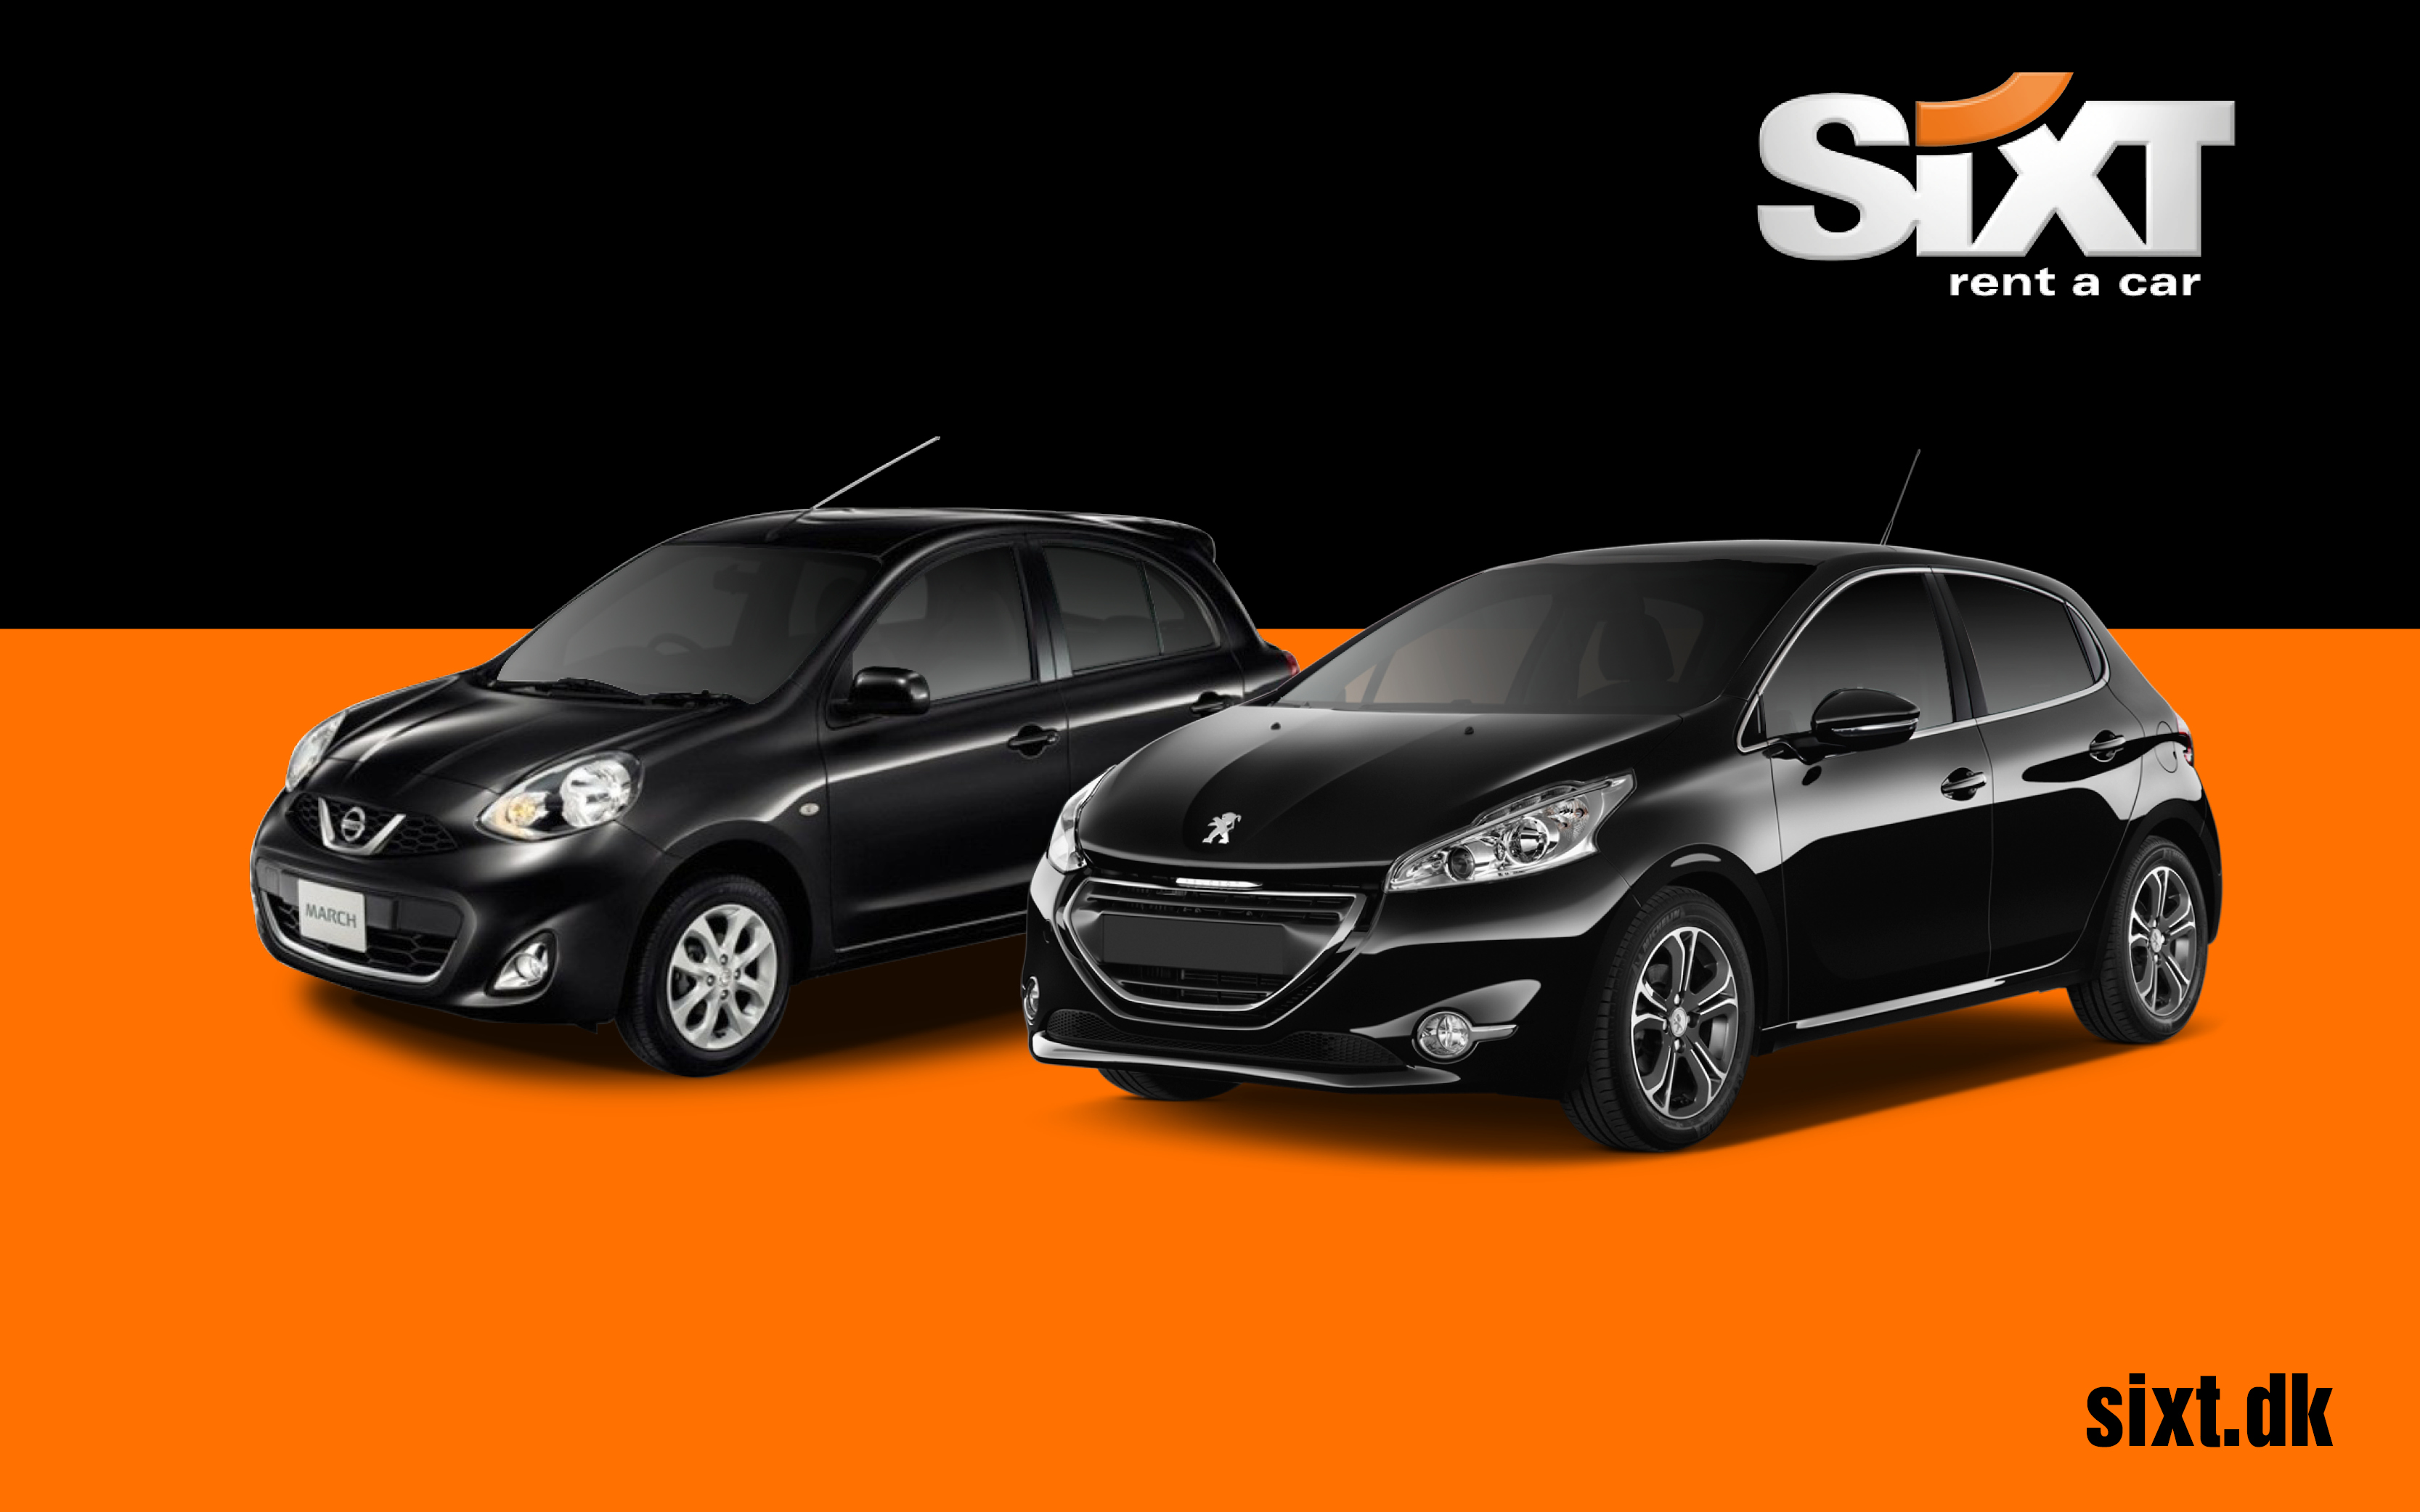 Sixt Car Hire in Palo Alto CA. Alongside your vehicle, you are given the option to include extras with your booking. Choose an in-car satellite navigation system if you want to zip around Palo Alto CA with ease.